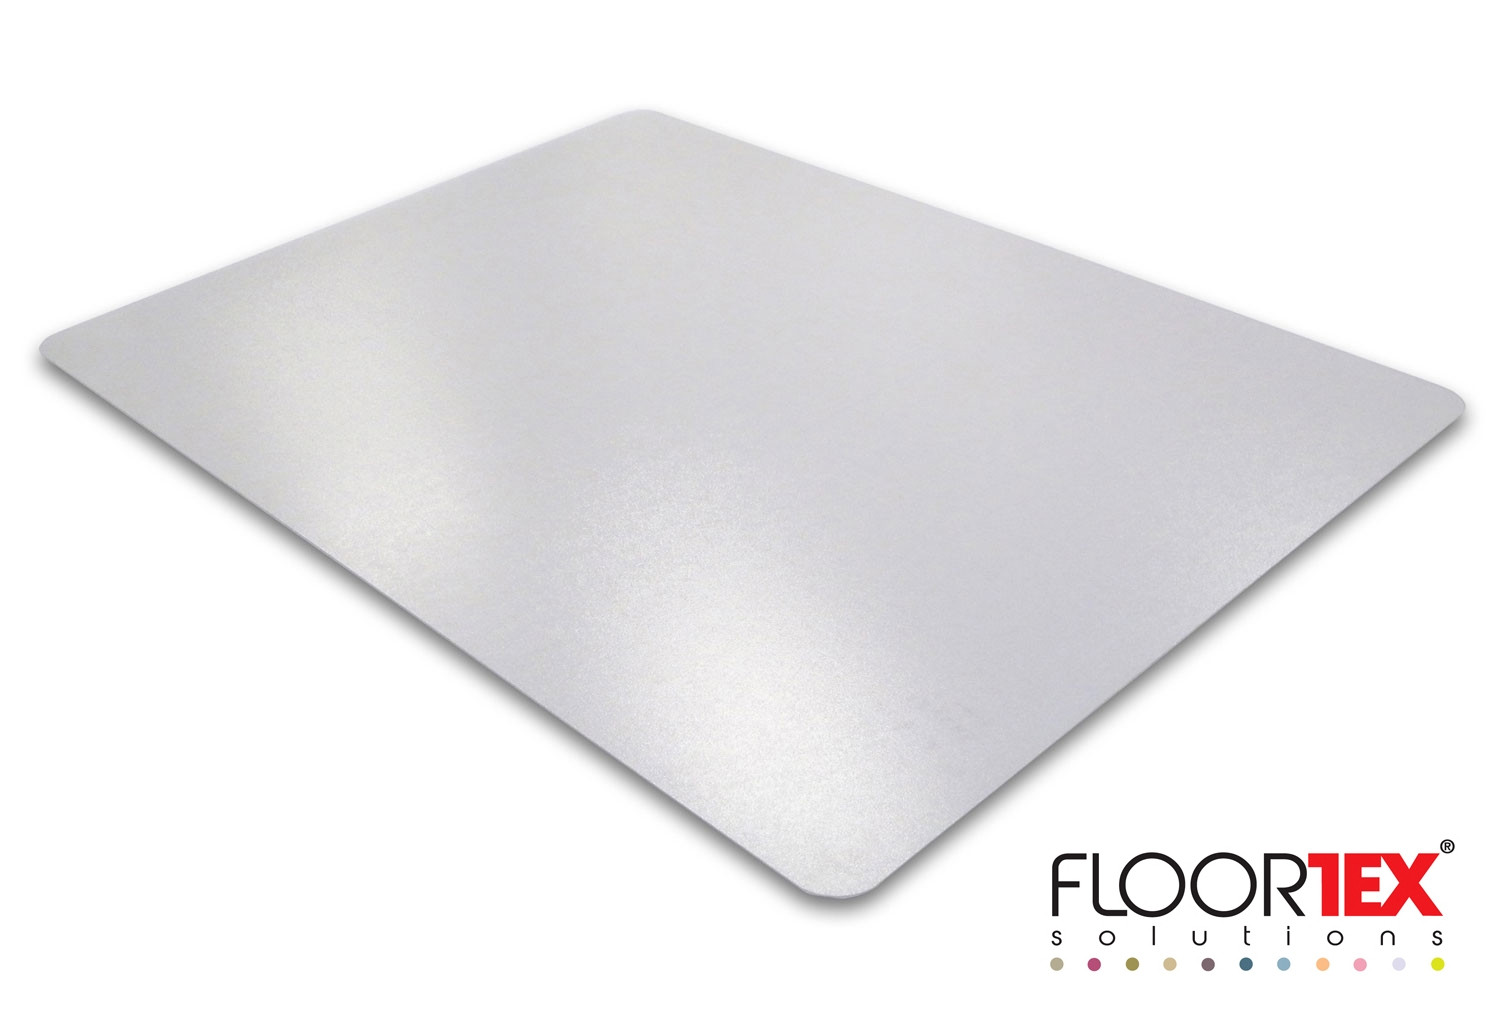 Pack of 4 Hometex Biosafe PVC Placemats